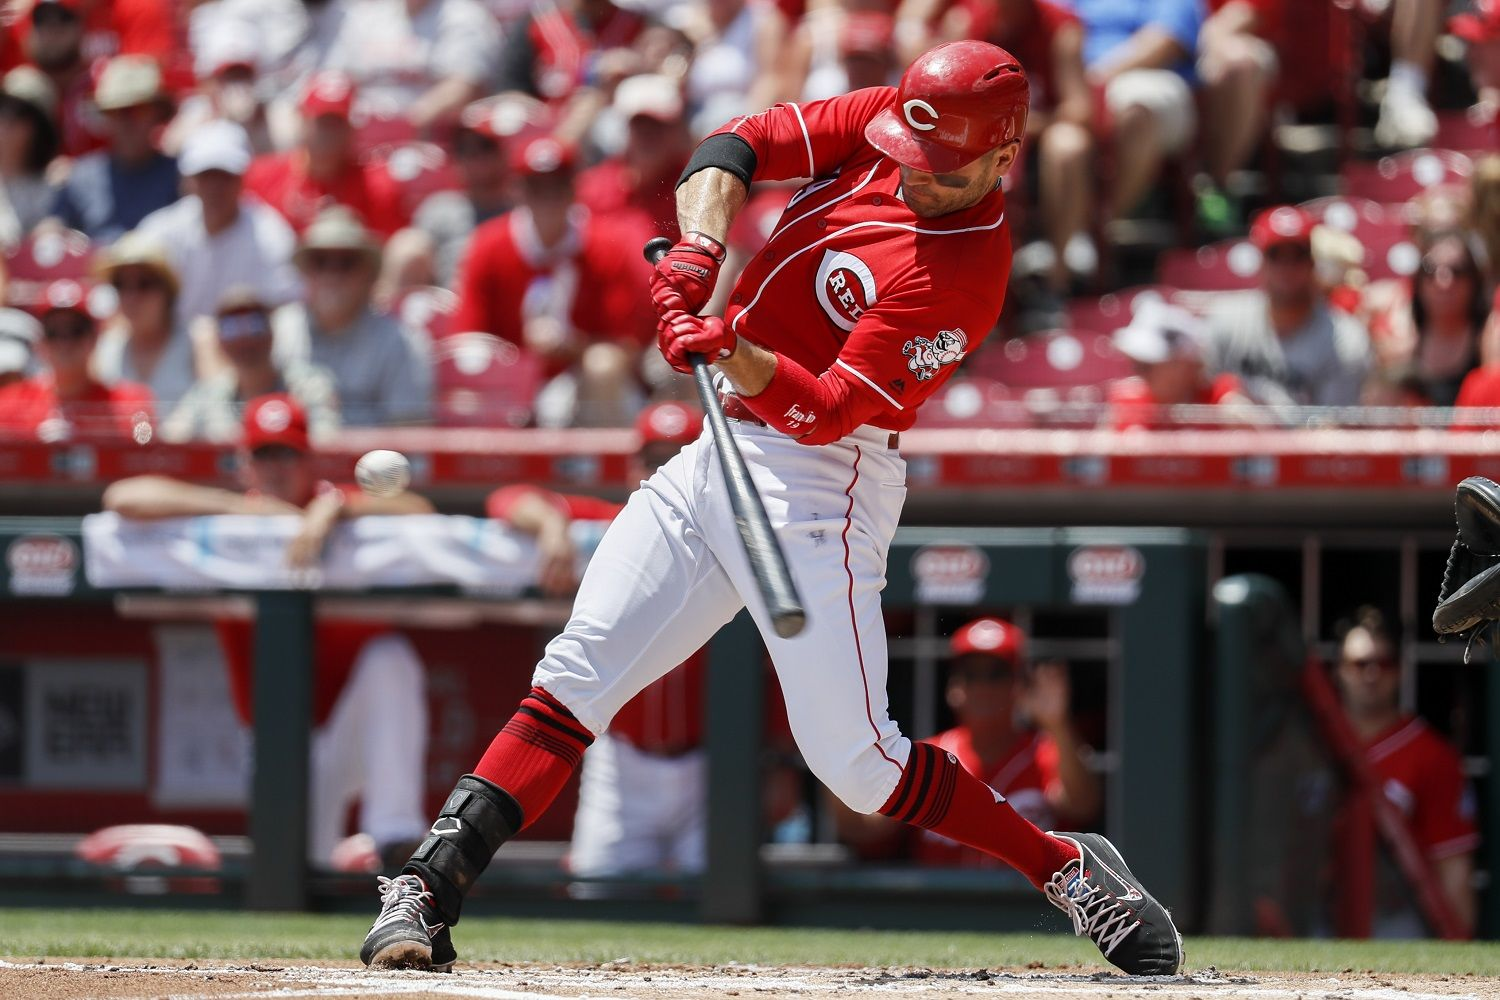 Cincinnati Reds' Joey Votto hits an RBI double off Milwaukee Brewers starting pitcher Freddy Peralta in the first inning of a baseball game, Sunday, July 1, 2018, in Cincinnati. (AP Photo/John Minchillo)